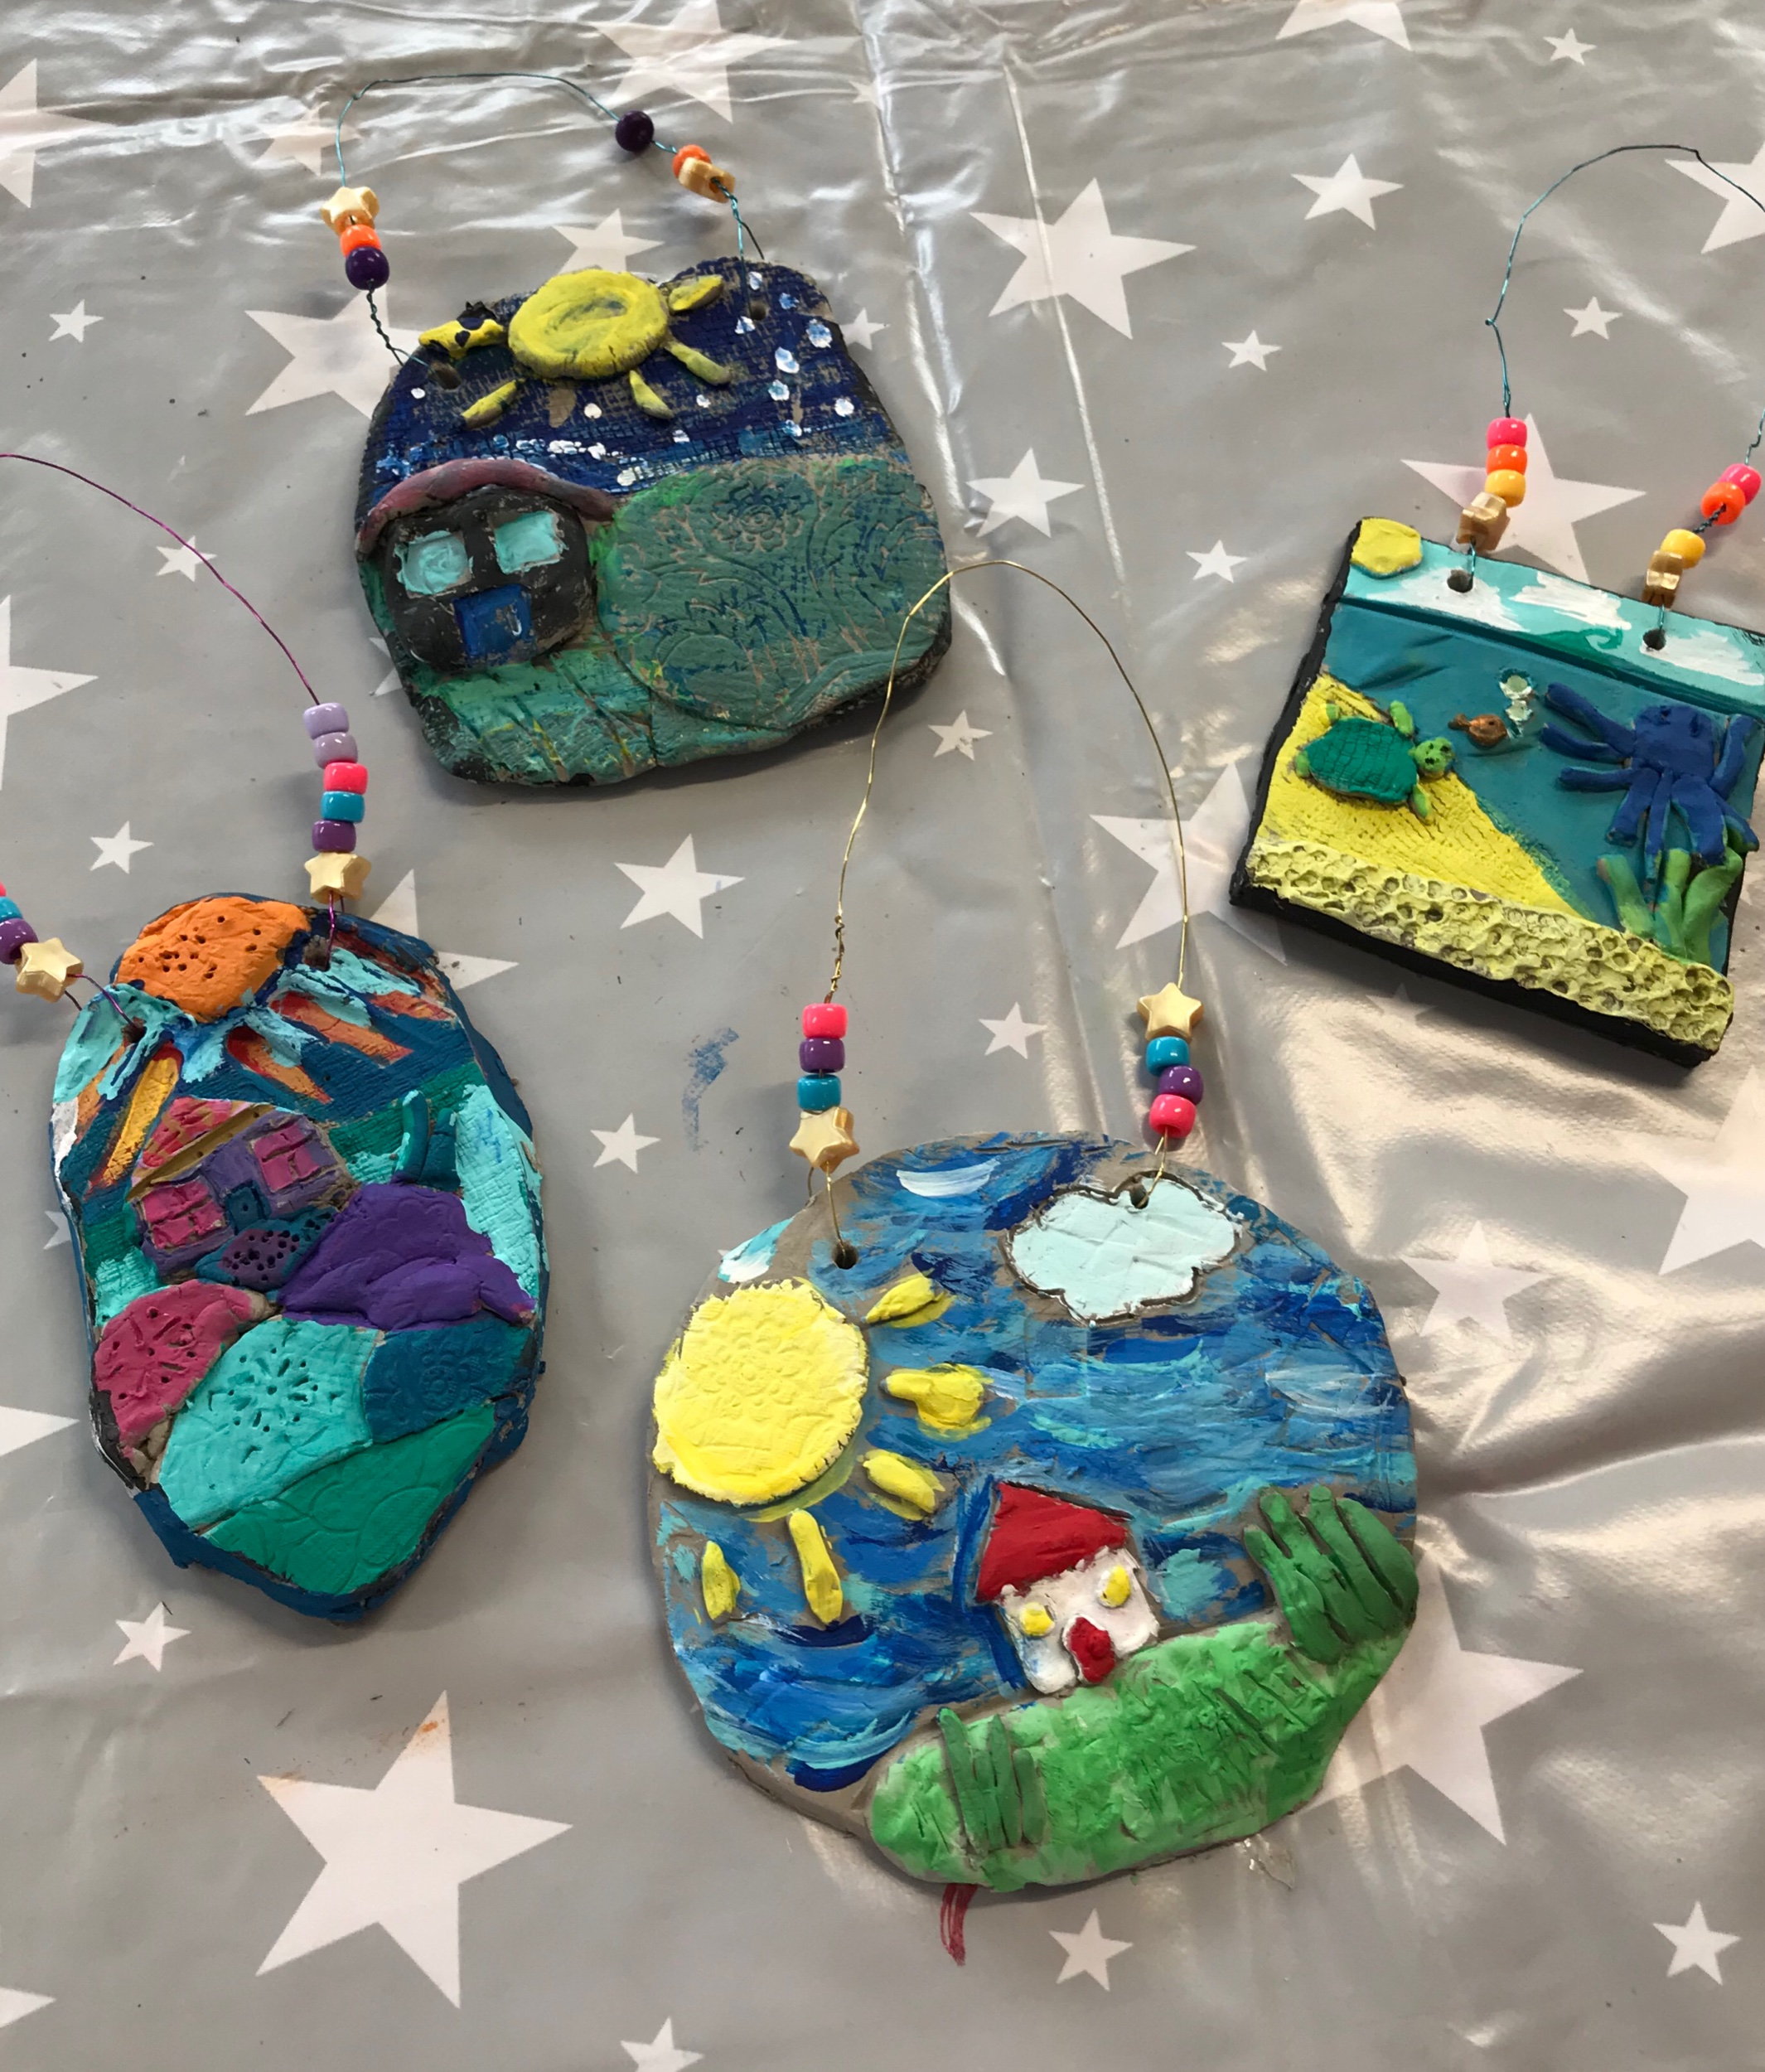 Clay Landscapes